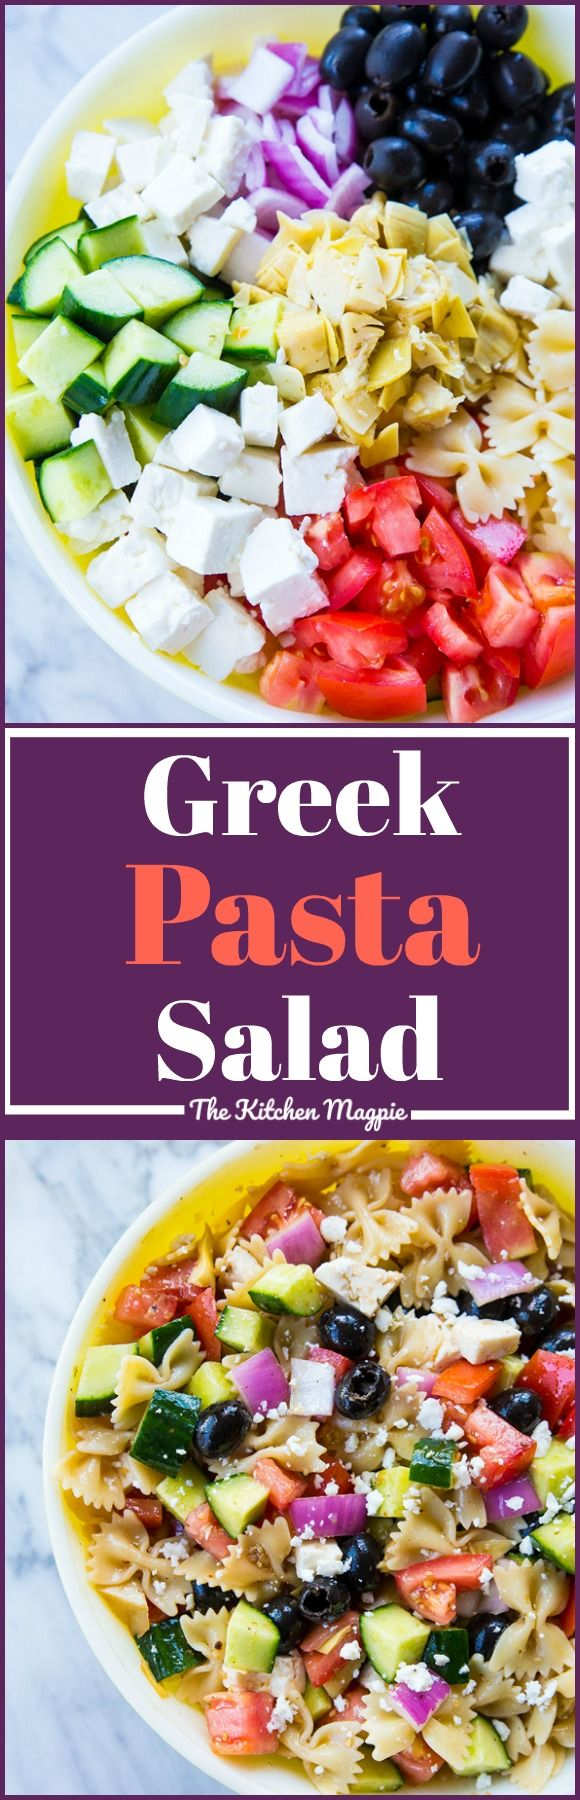 Fast & Easy Greek Pasta Salad, loaded with olives, cucumber and even artichoke hearts! ( which make it the BEST ever!) #Salads #recipes #GreekSalad #healthyrecipes from @kitchenmagpie